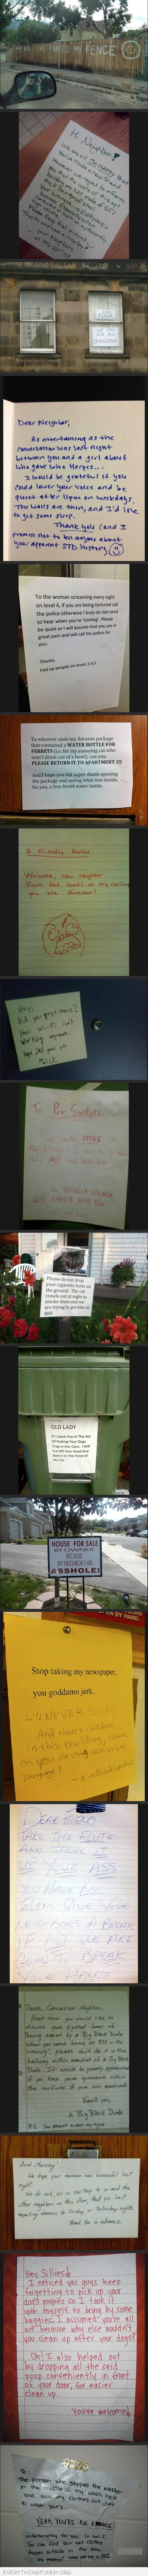 funny notes, funny messages, funny letters, humorous notes,